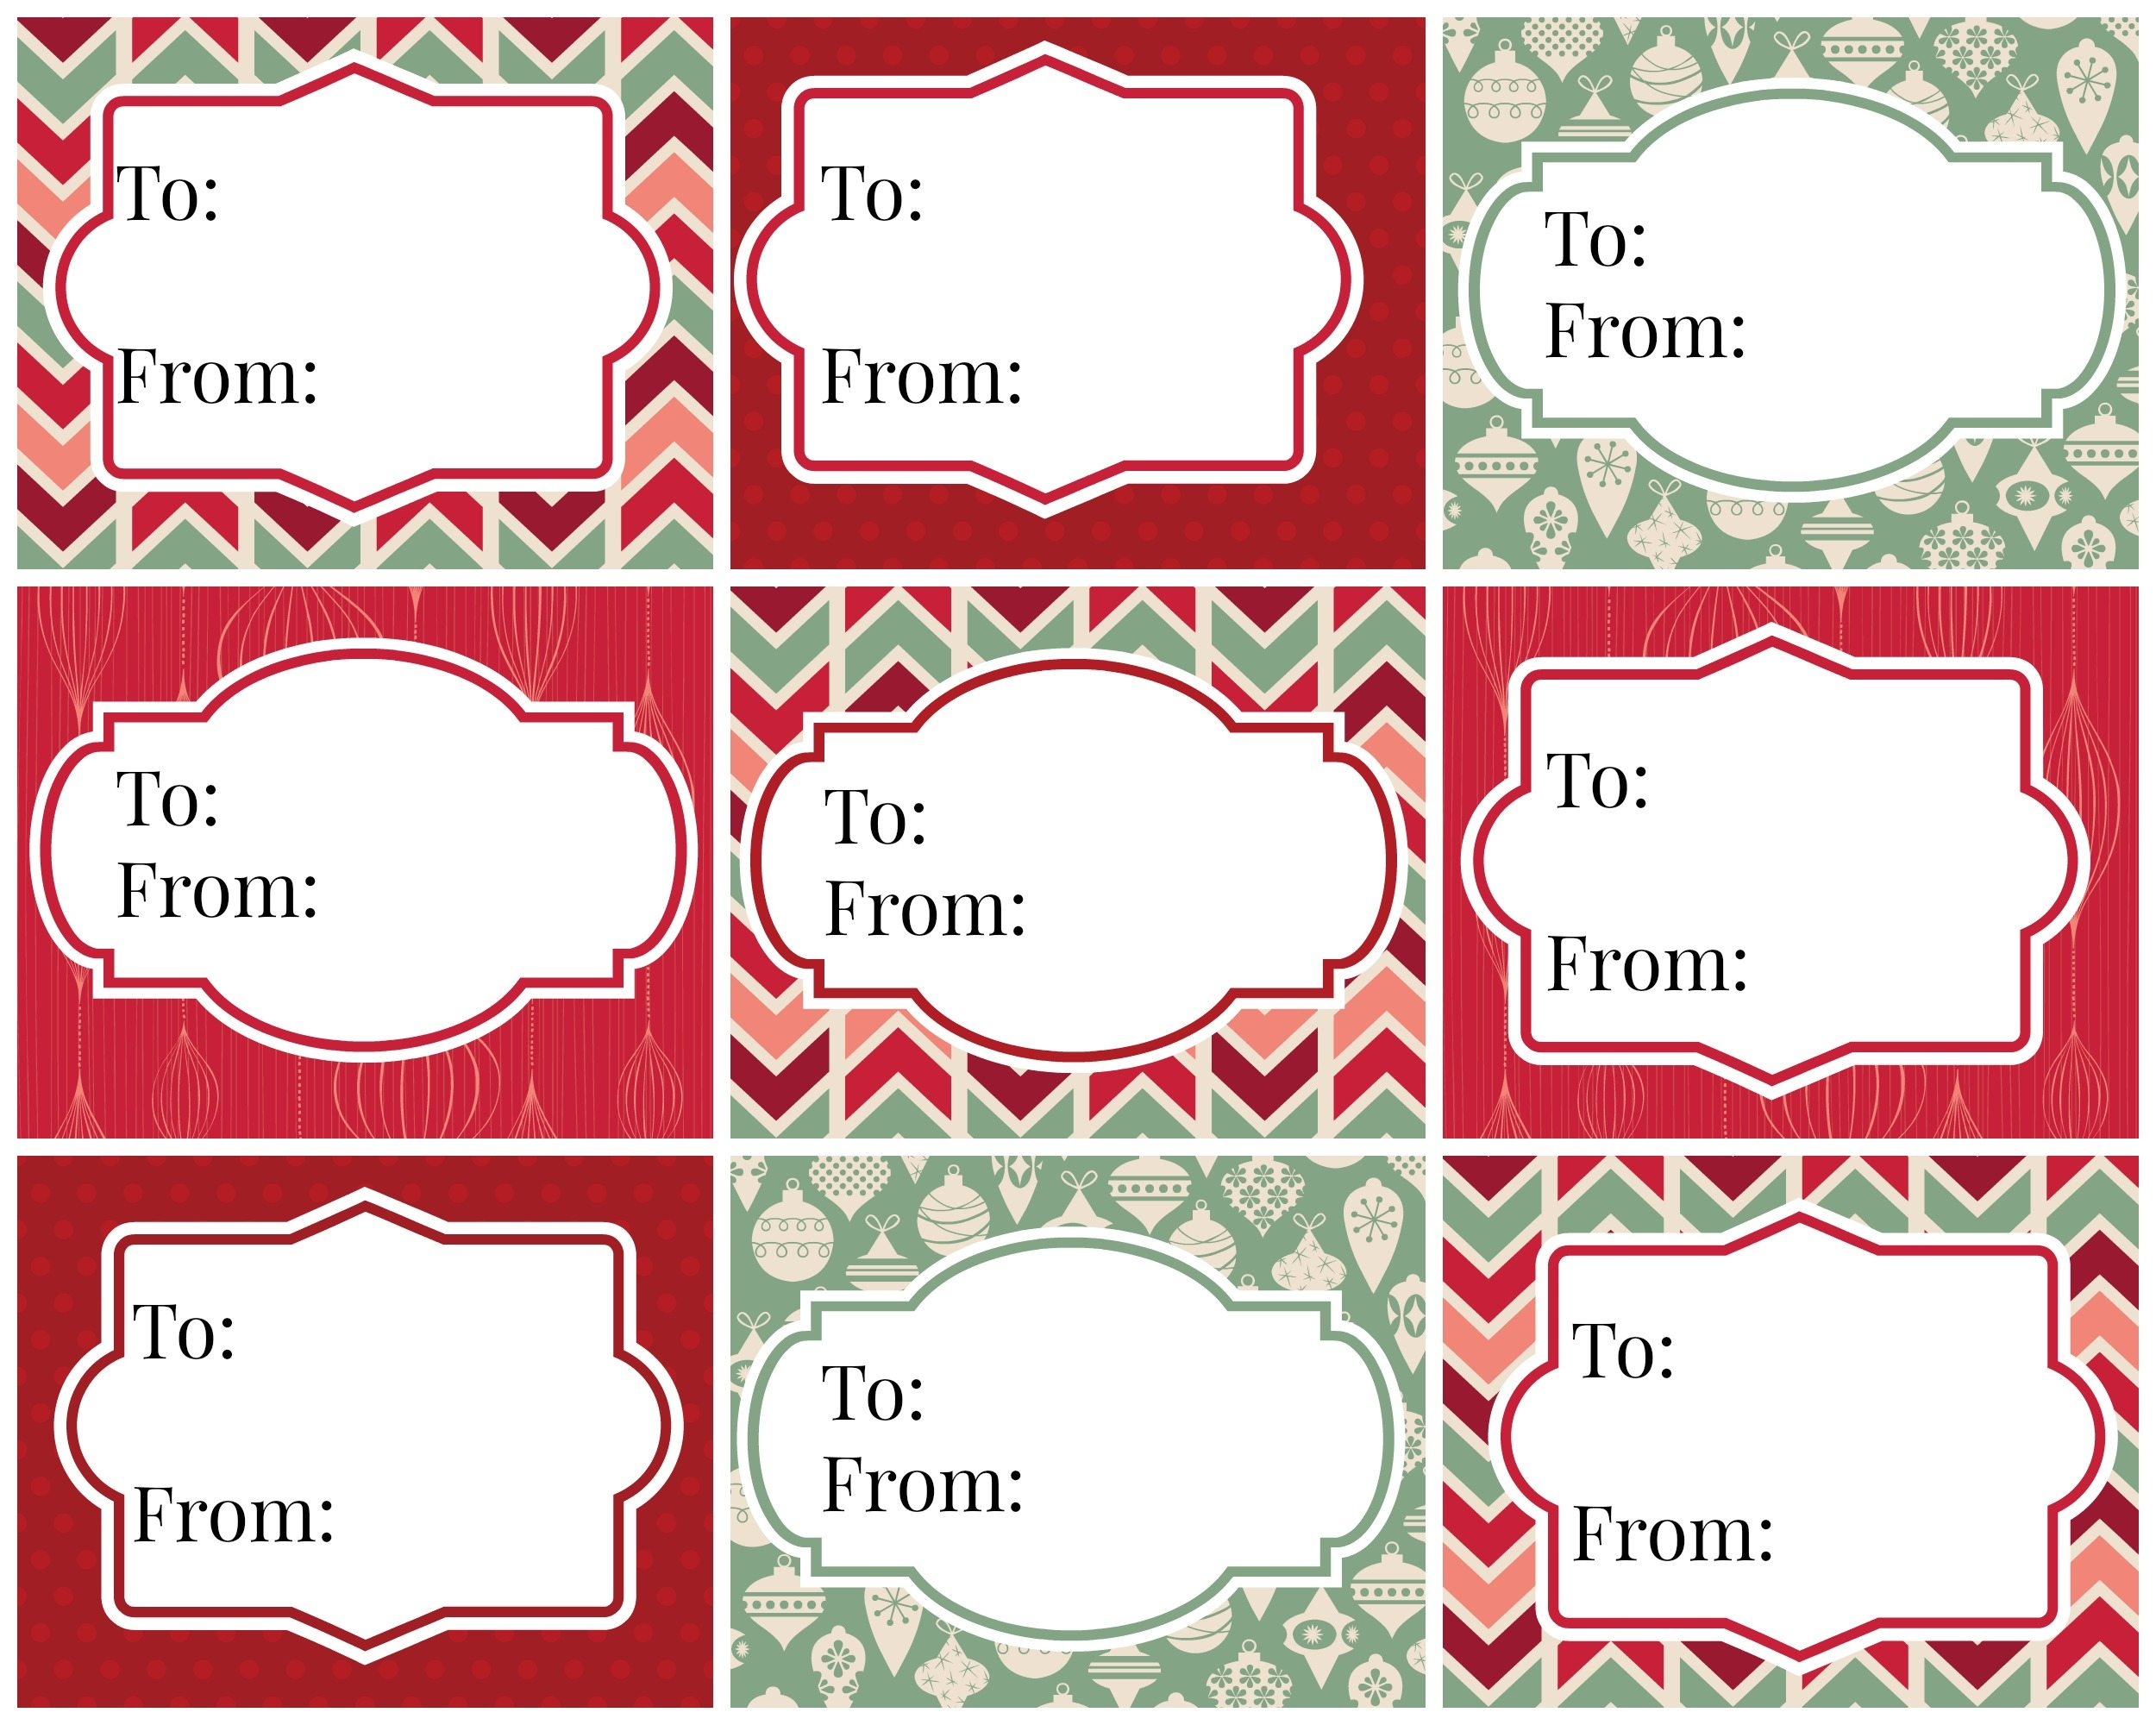 Vintage Christmas Gift Tags - Free Printables | Refresh Restyle - Free Printable Vintage Christmas Tags For Gifts